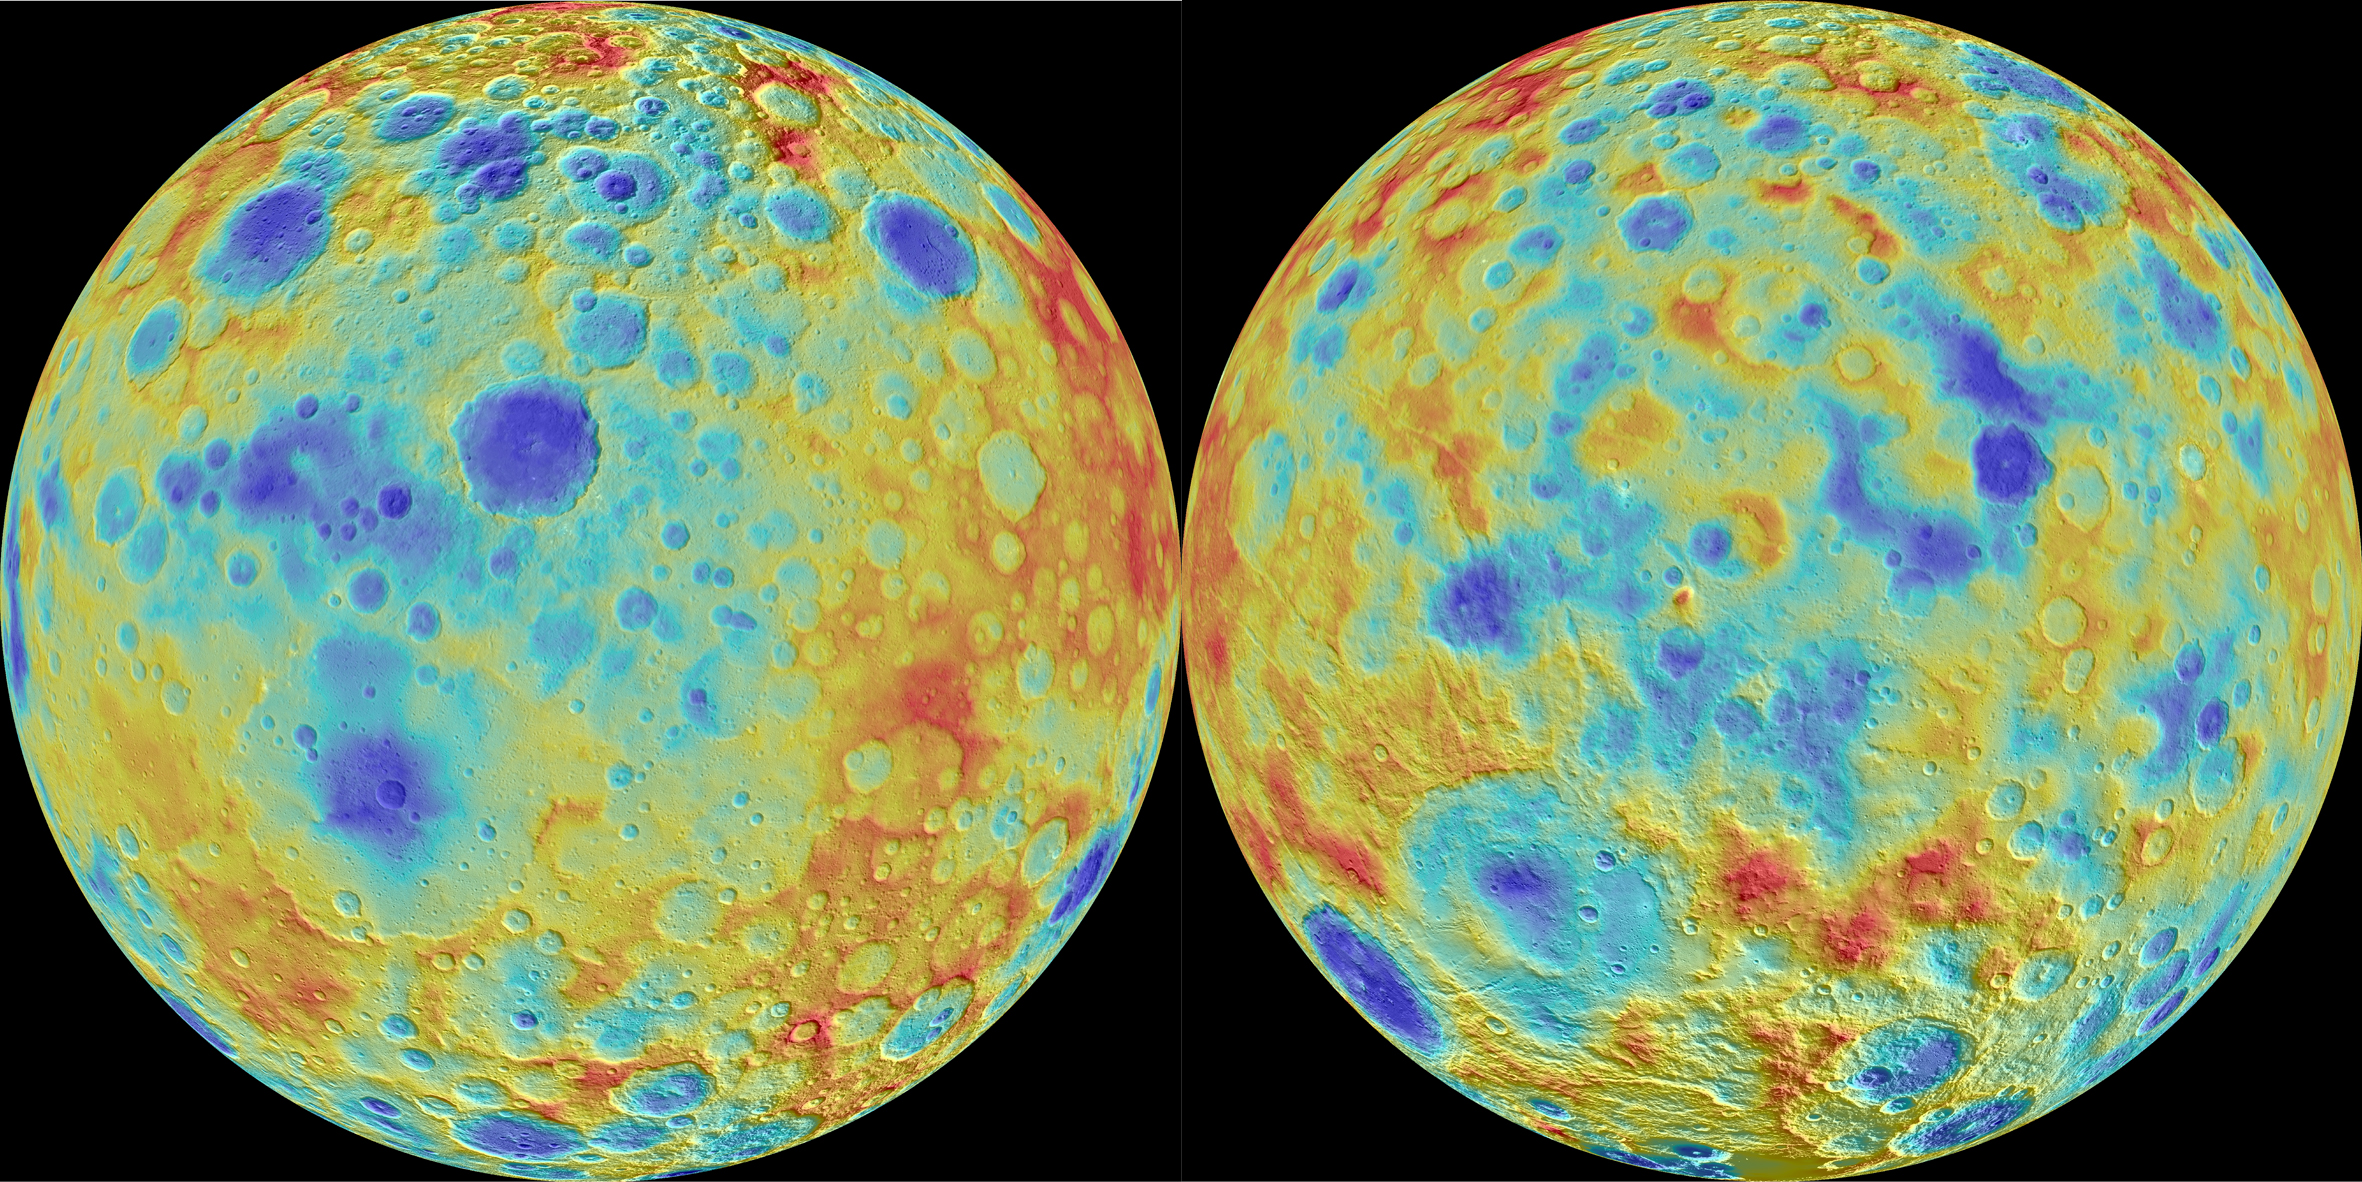 Rainbow topographic map of Ceres